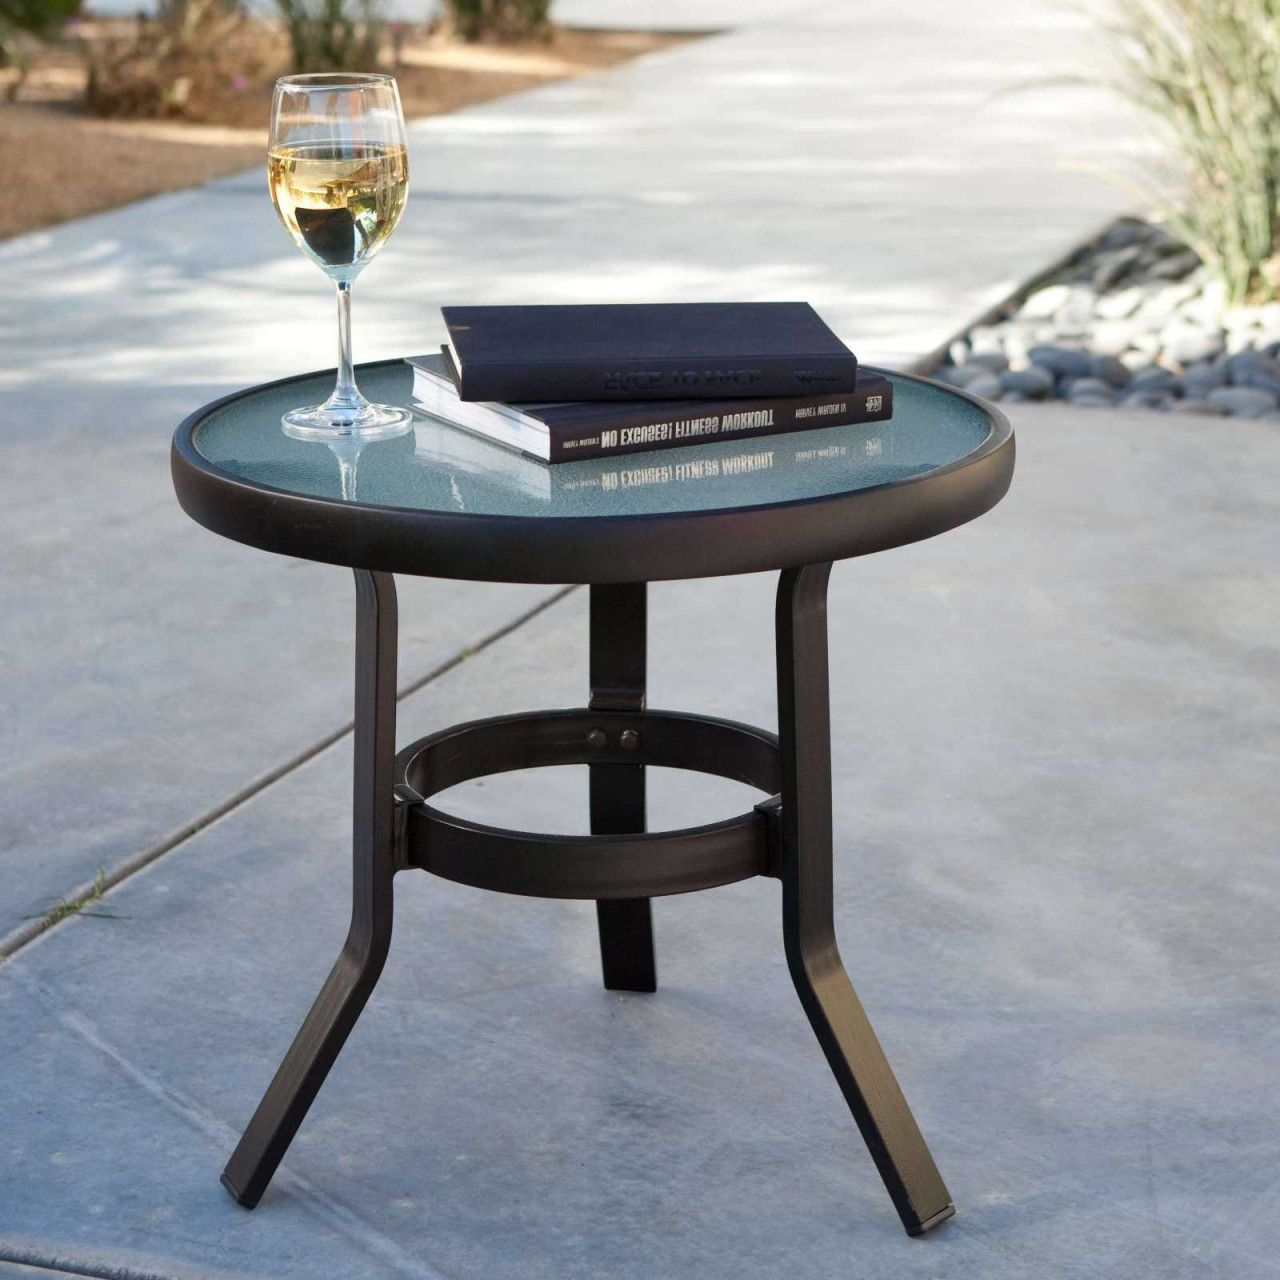 70 Awesome Metal Round Coffee Table 2019 Round Metal Coffee Table Round Coffee Table Small Garden Coffee Table [ 1280 x 1280 Pixel ]